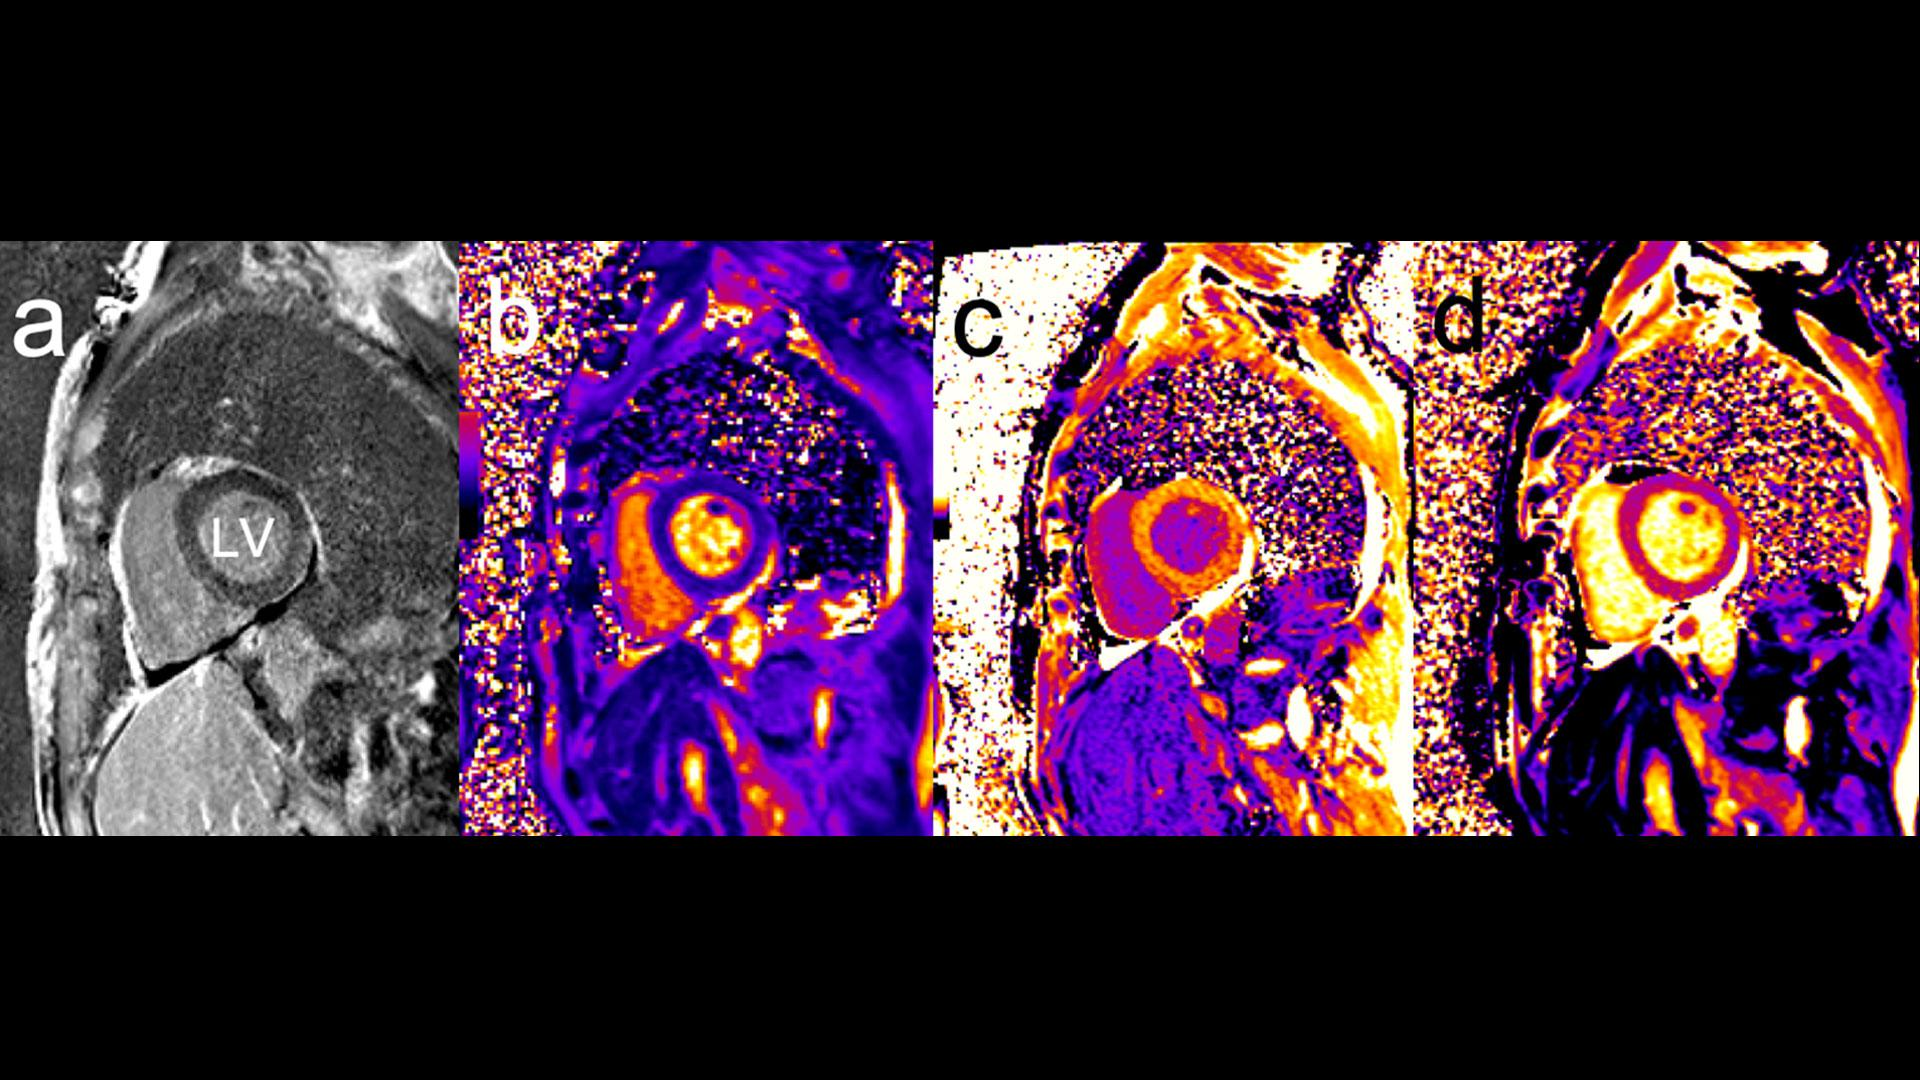 Patient undergoing immune checkpoint inhibitor (ICI) cancer therapy with troponin elevation and suspicion of immune myocarditis. While (A) LGE imaging demonstrates very faint diffuse enhancement, cardiac relaxometry with T1 and T2-mapping (at 1.5T) provides further information. (B) T2 mapping reveals a T2 time of 55 ms while (C) pre-contrast T1 values were 1184 ms and (D) post-contrast T1 values 519 ms (0.15 mmol/kg Gadobutrol). Based on the patient's hematocrit the ECV is calculated to 38%.